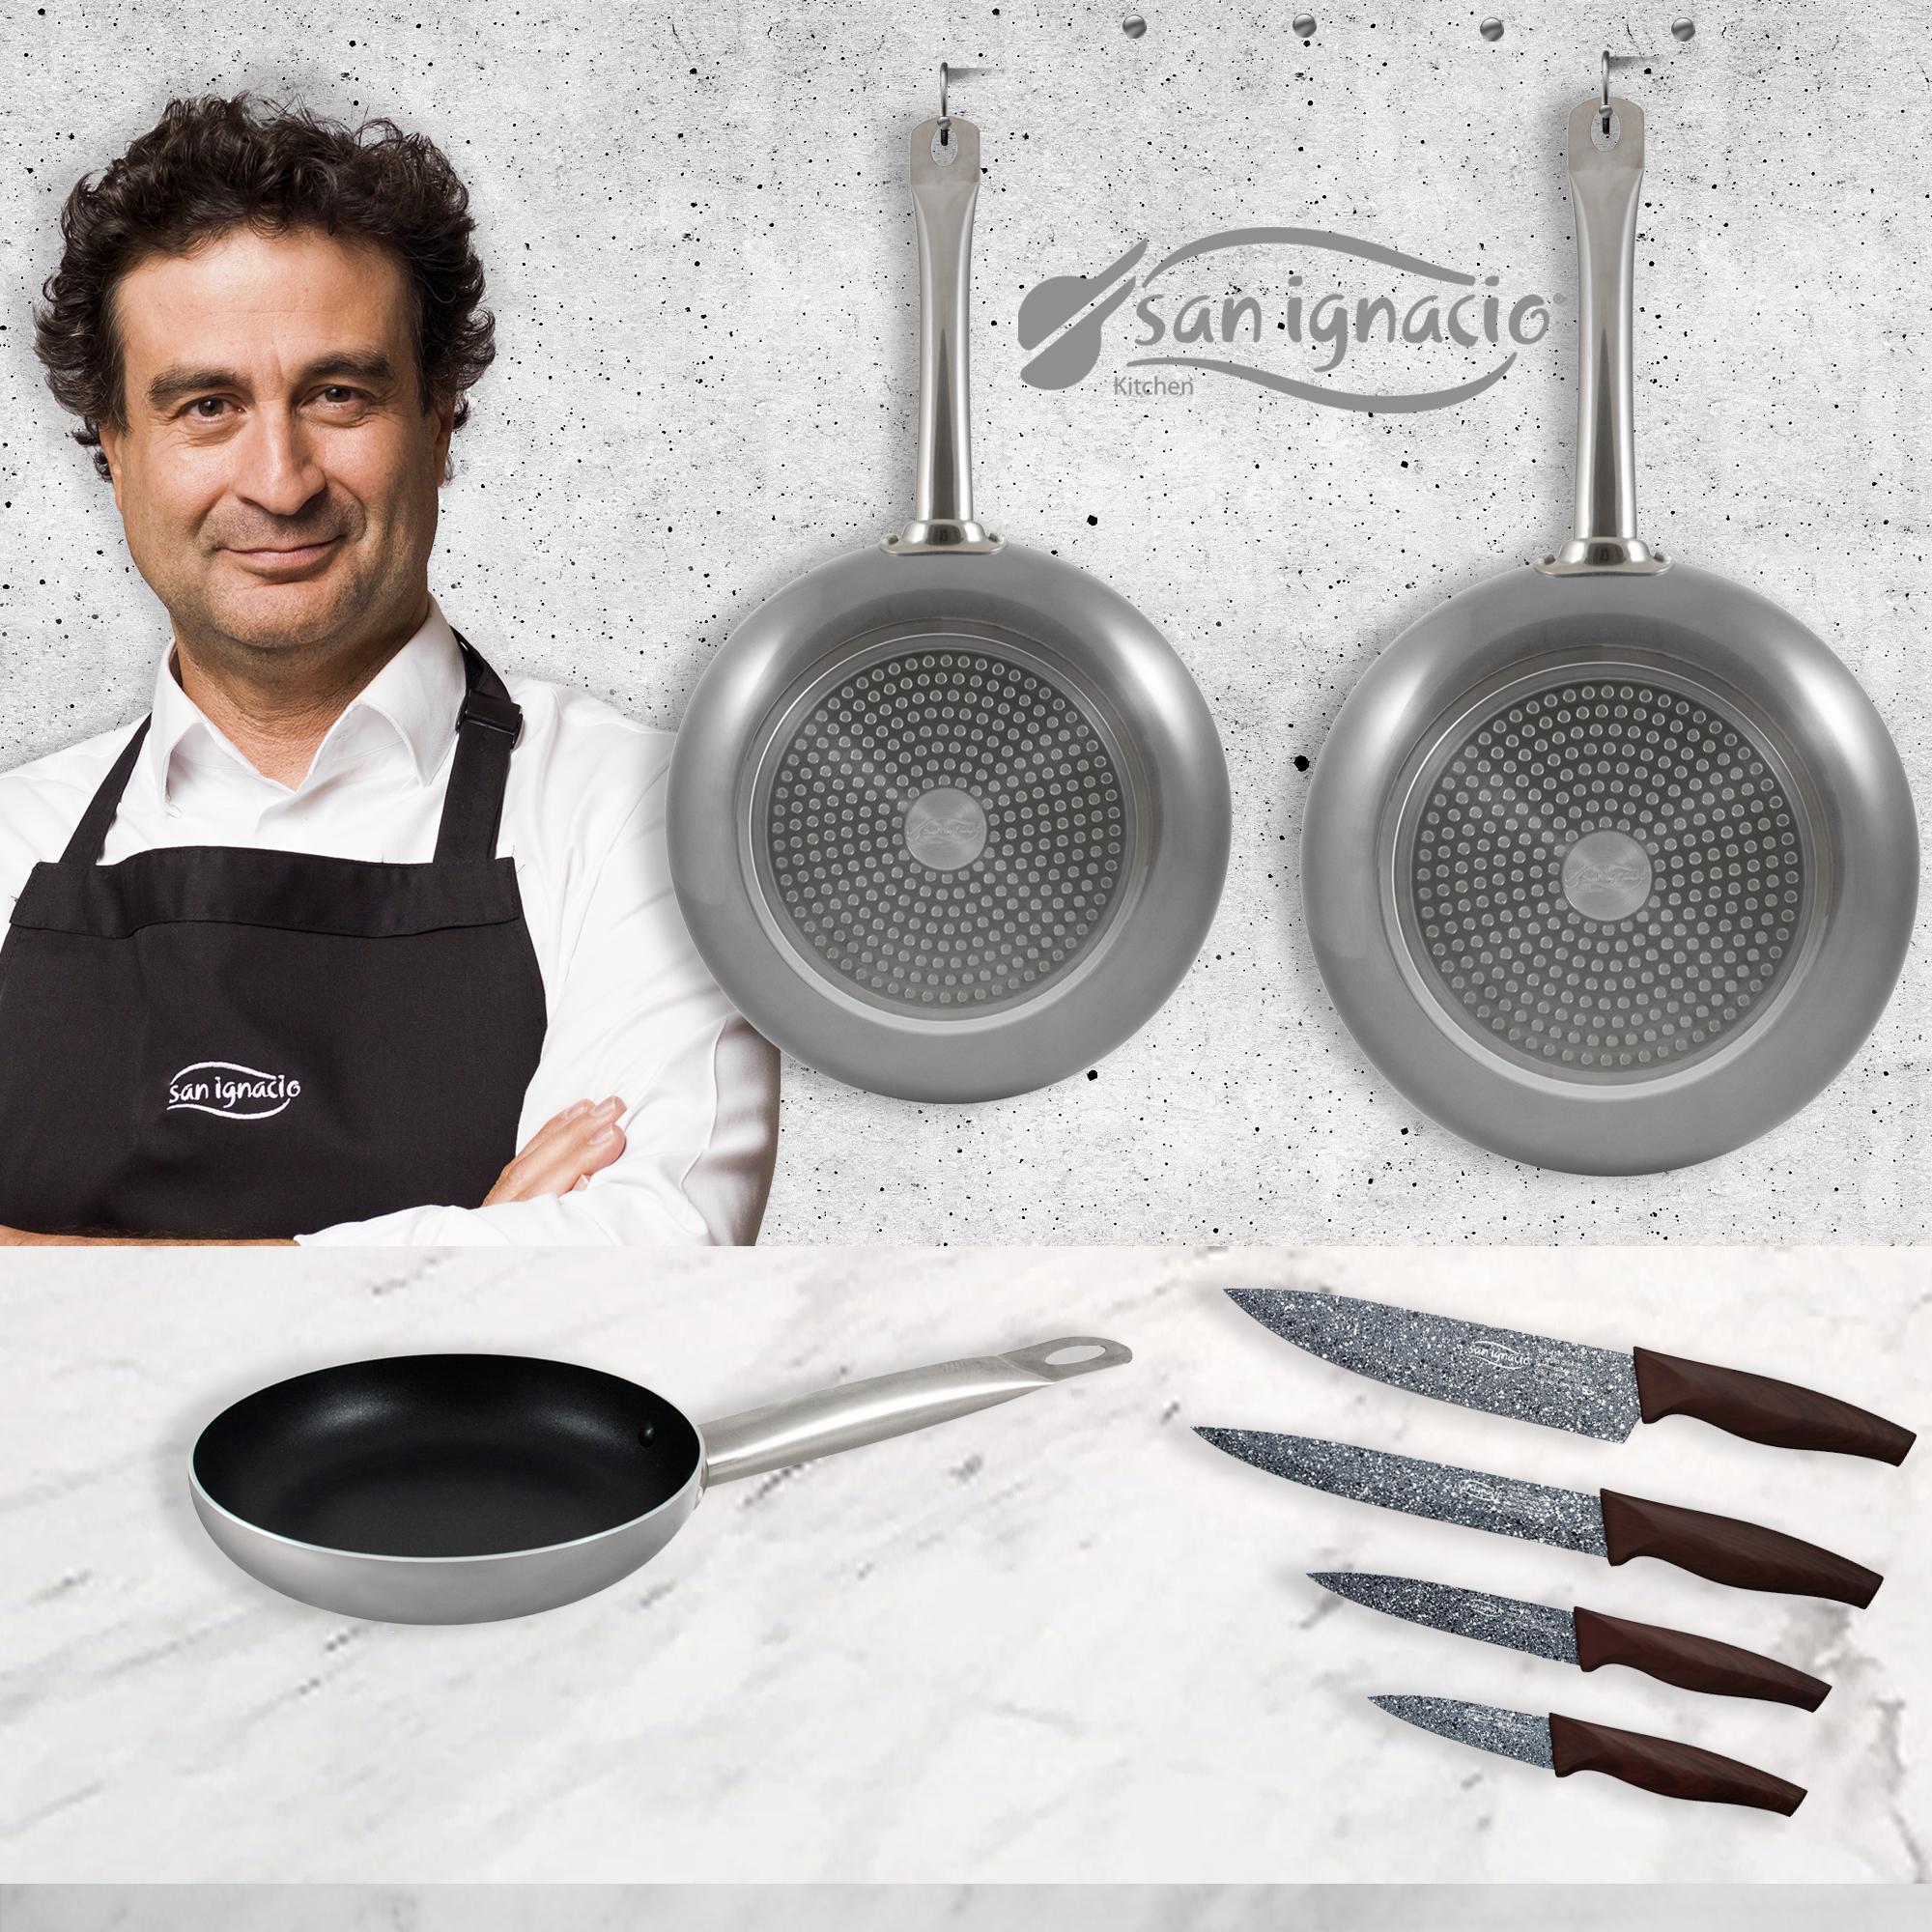 Pans (18, 20,24 Cm) In Aluminum Pressed With 4 Kitchen Knives SAN Ignacio Collection Professional Chef Platinum